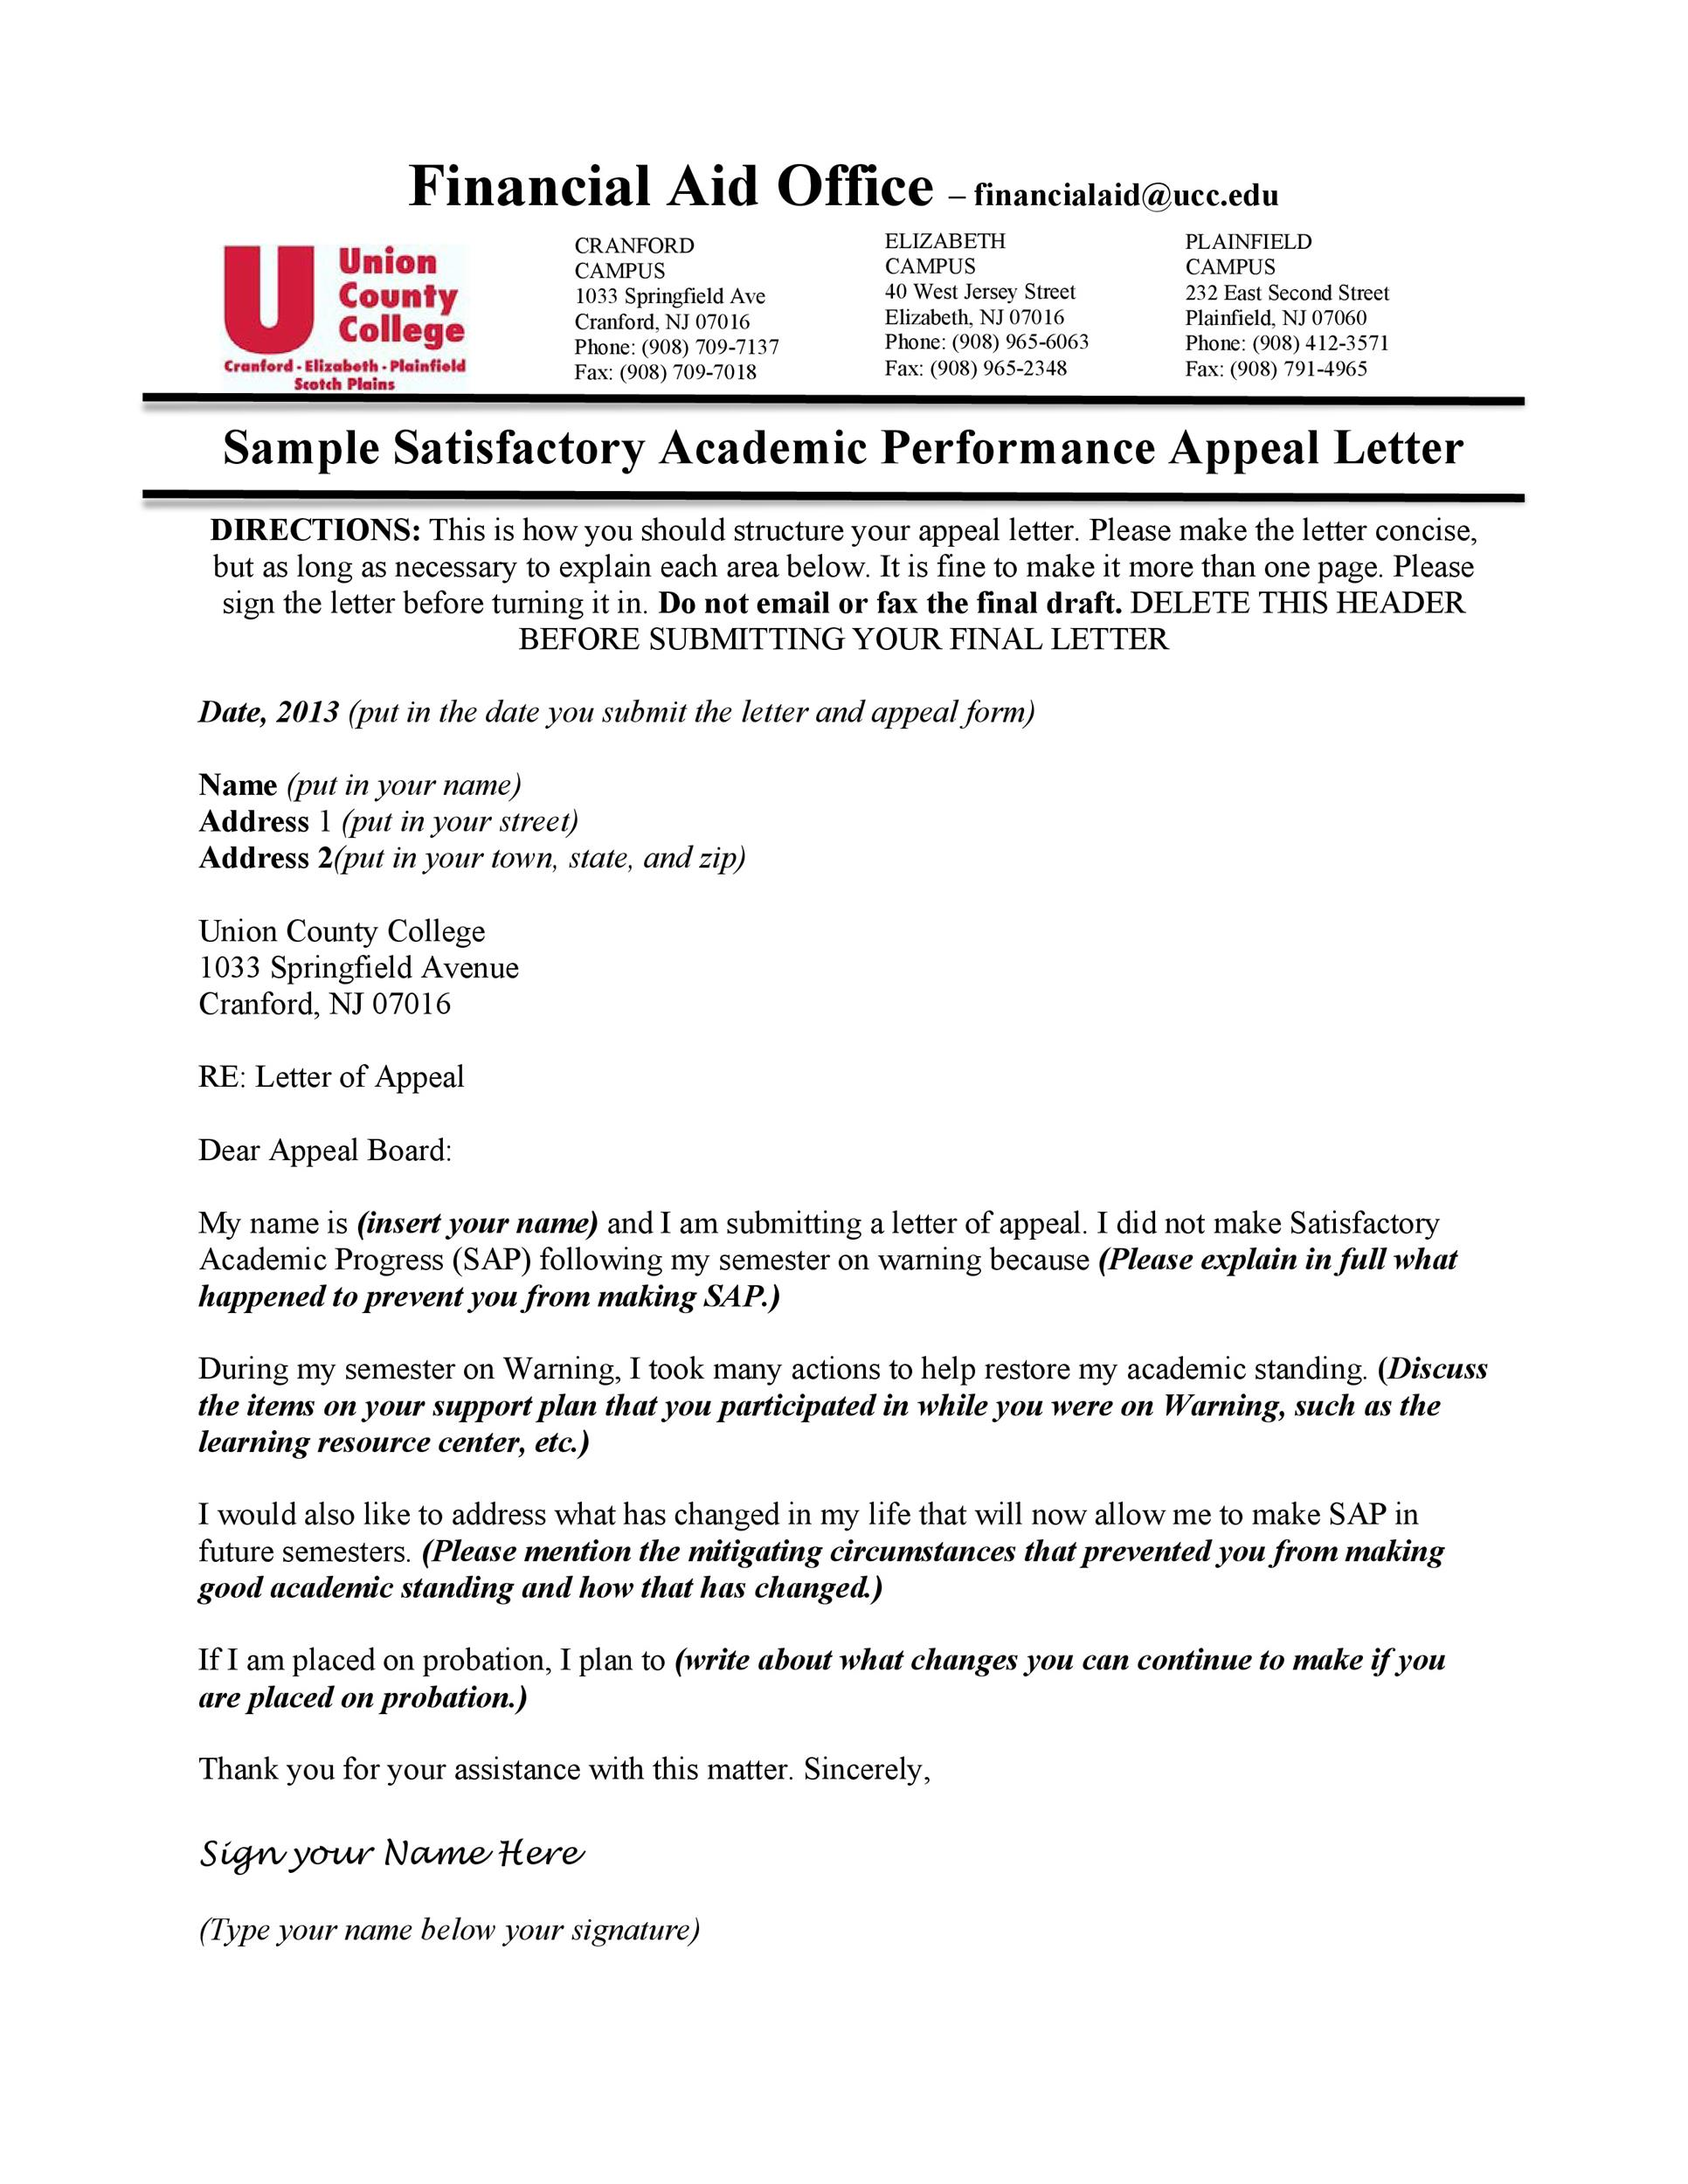 Free appeal letter 16